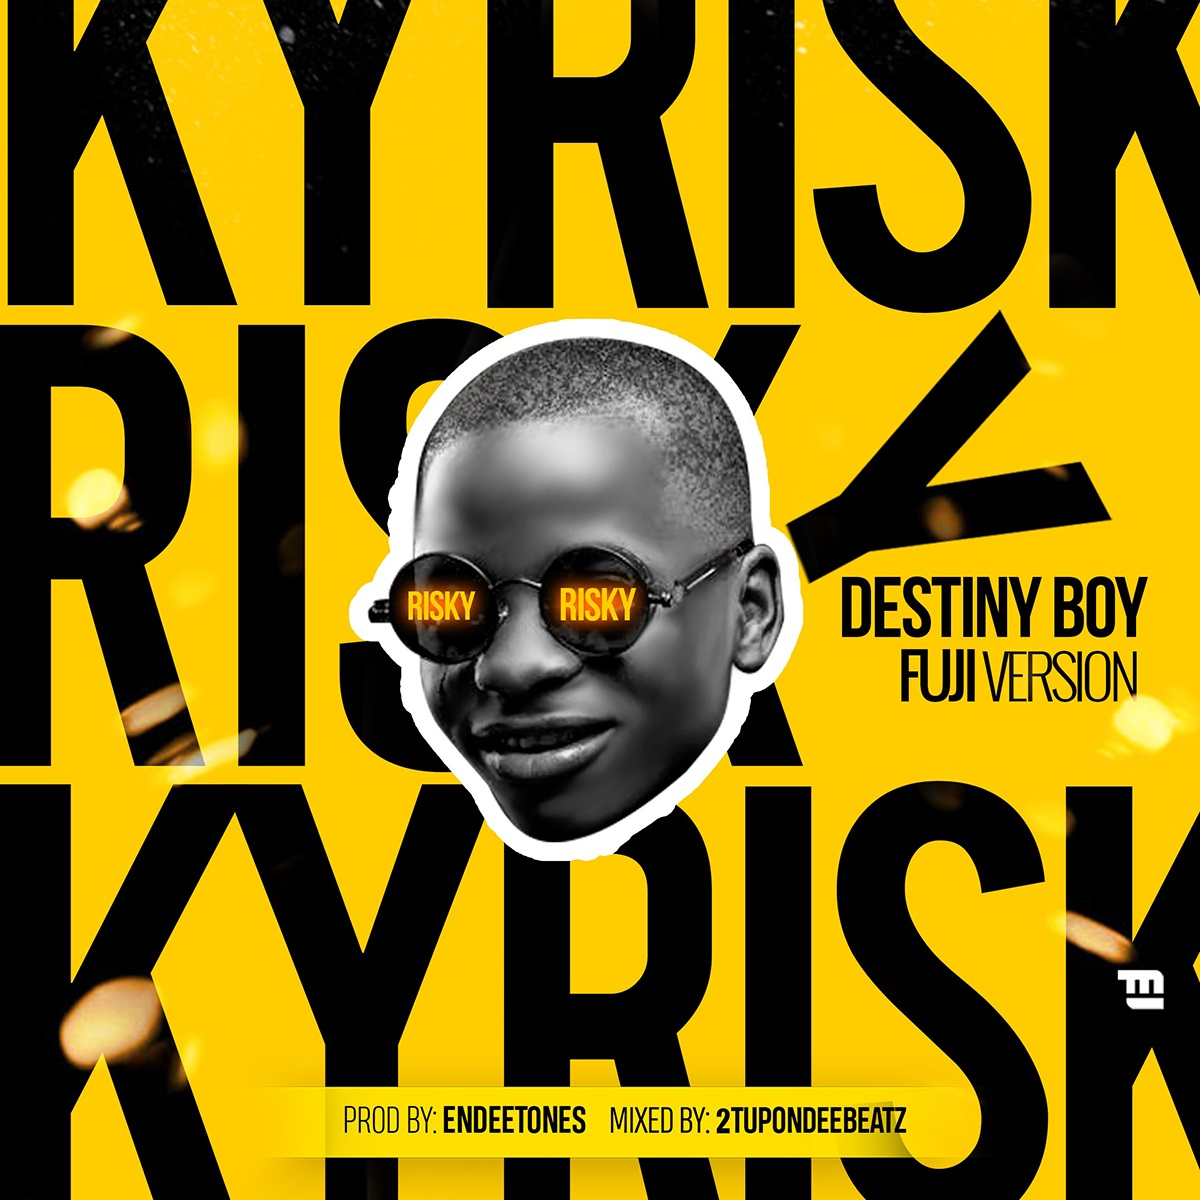 Destiny Boy - Davido's Risky Cover (Fuji Version)